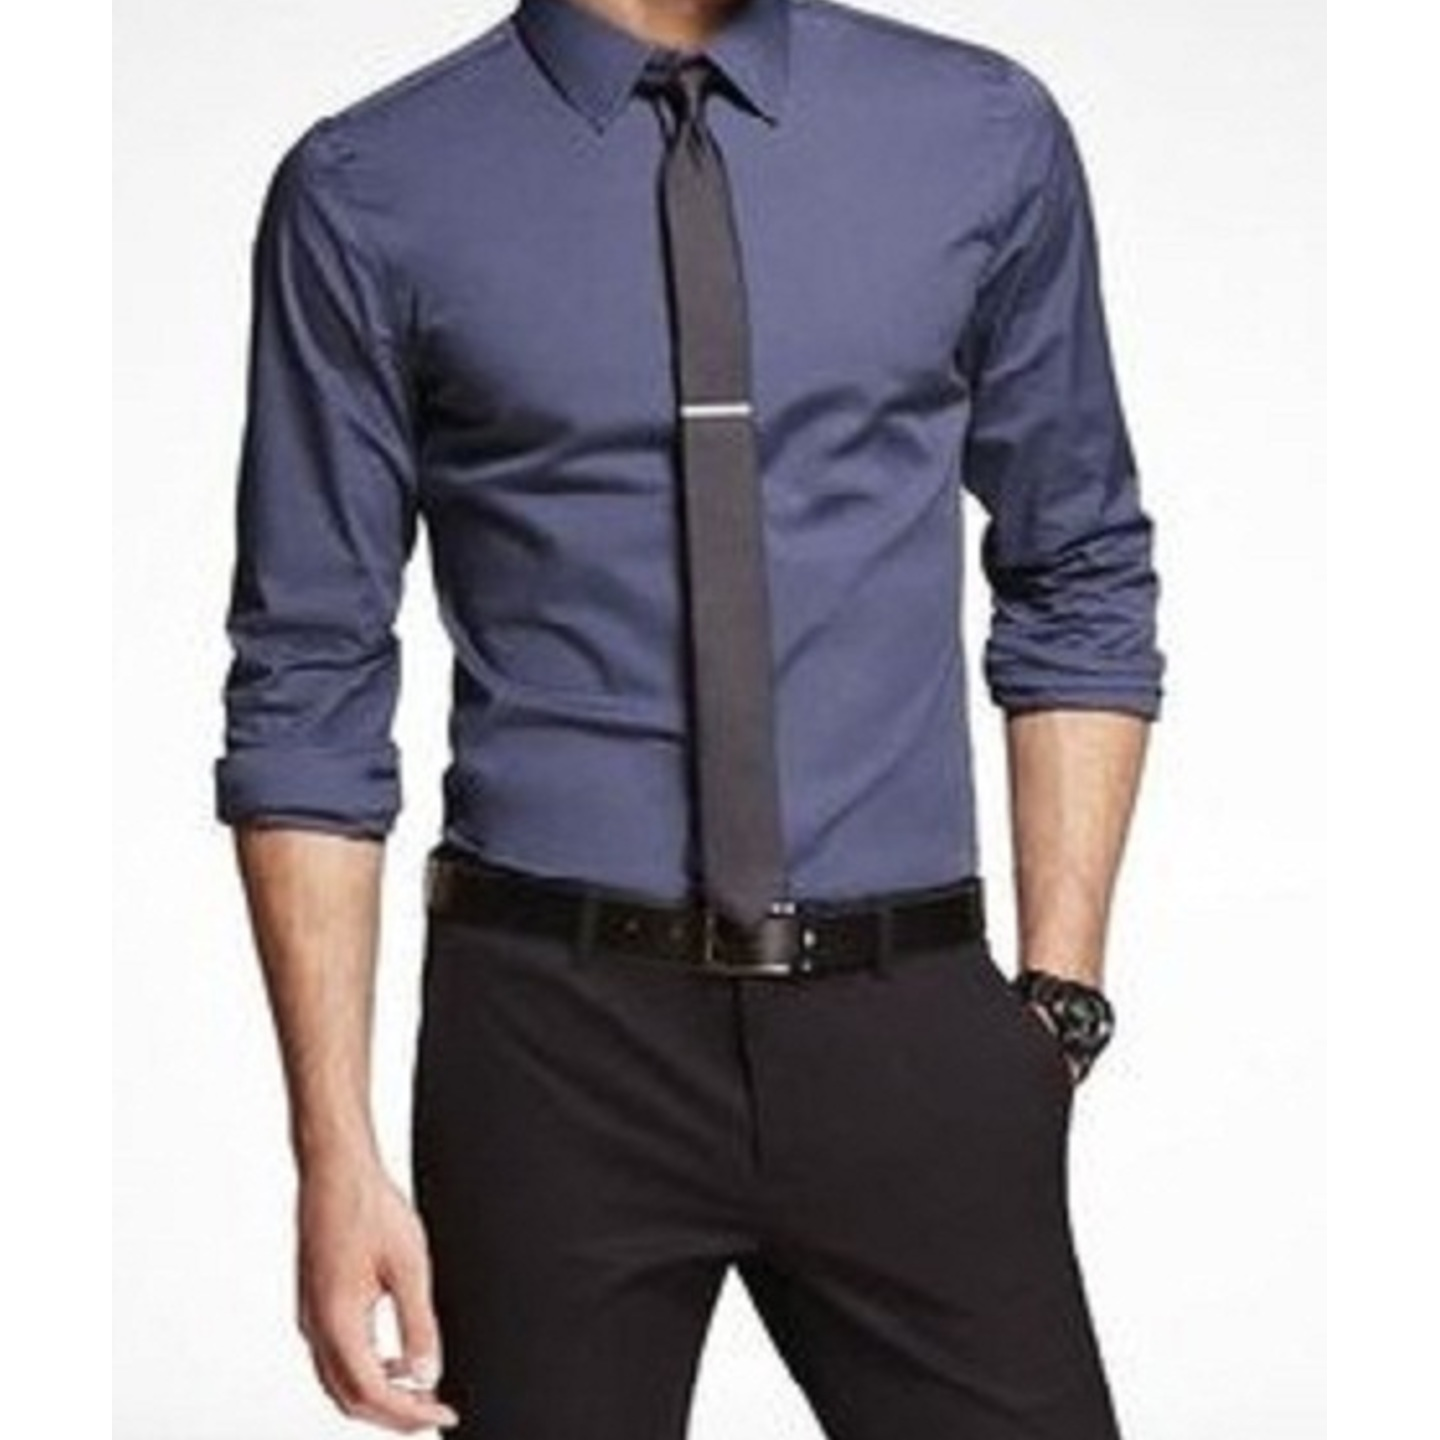 Clothes For Men - DriverLayer Search Engine